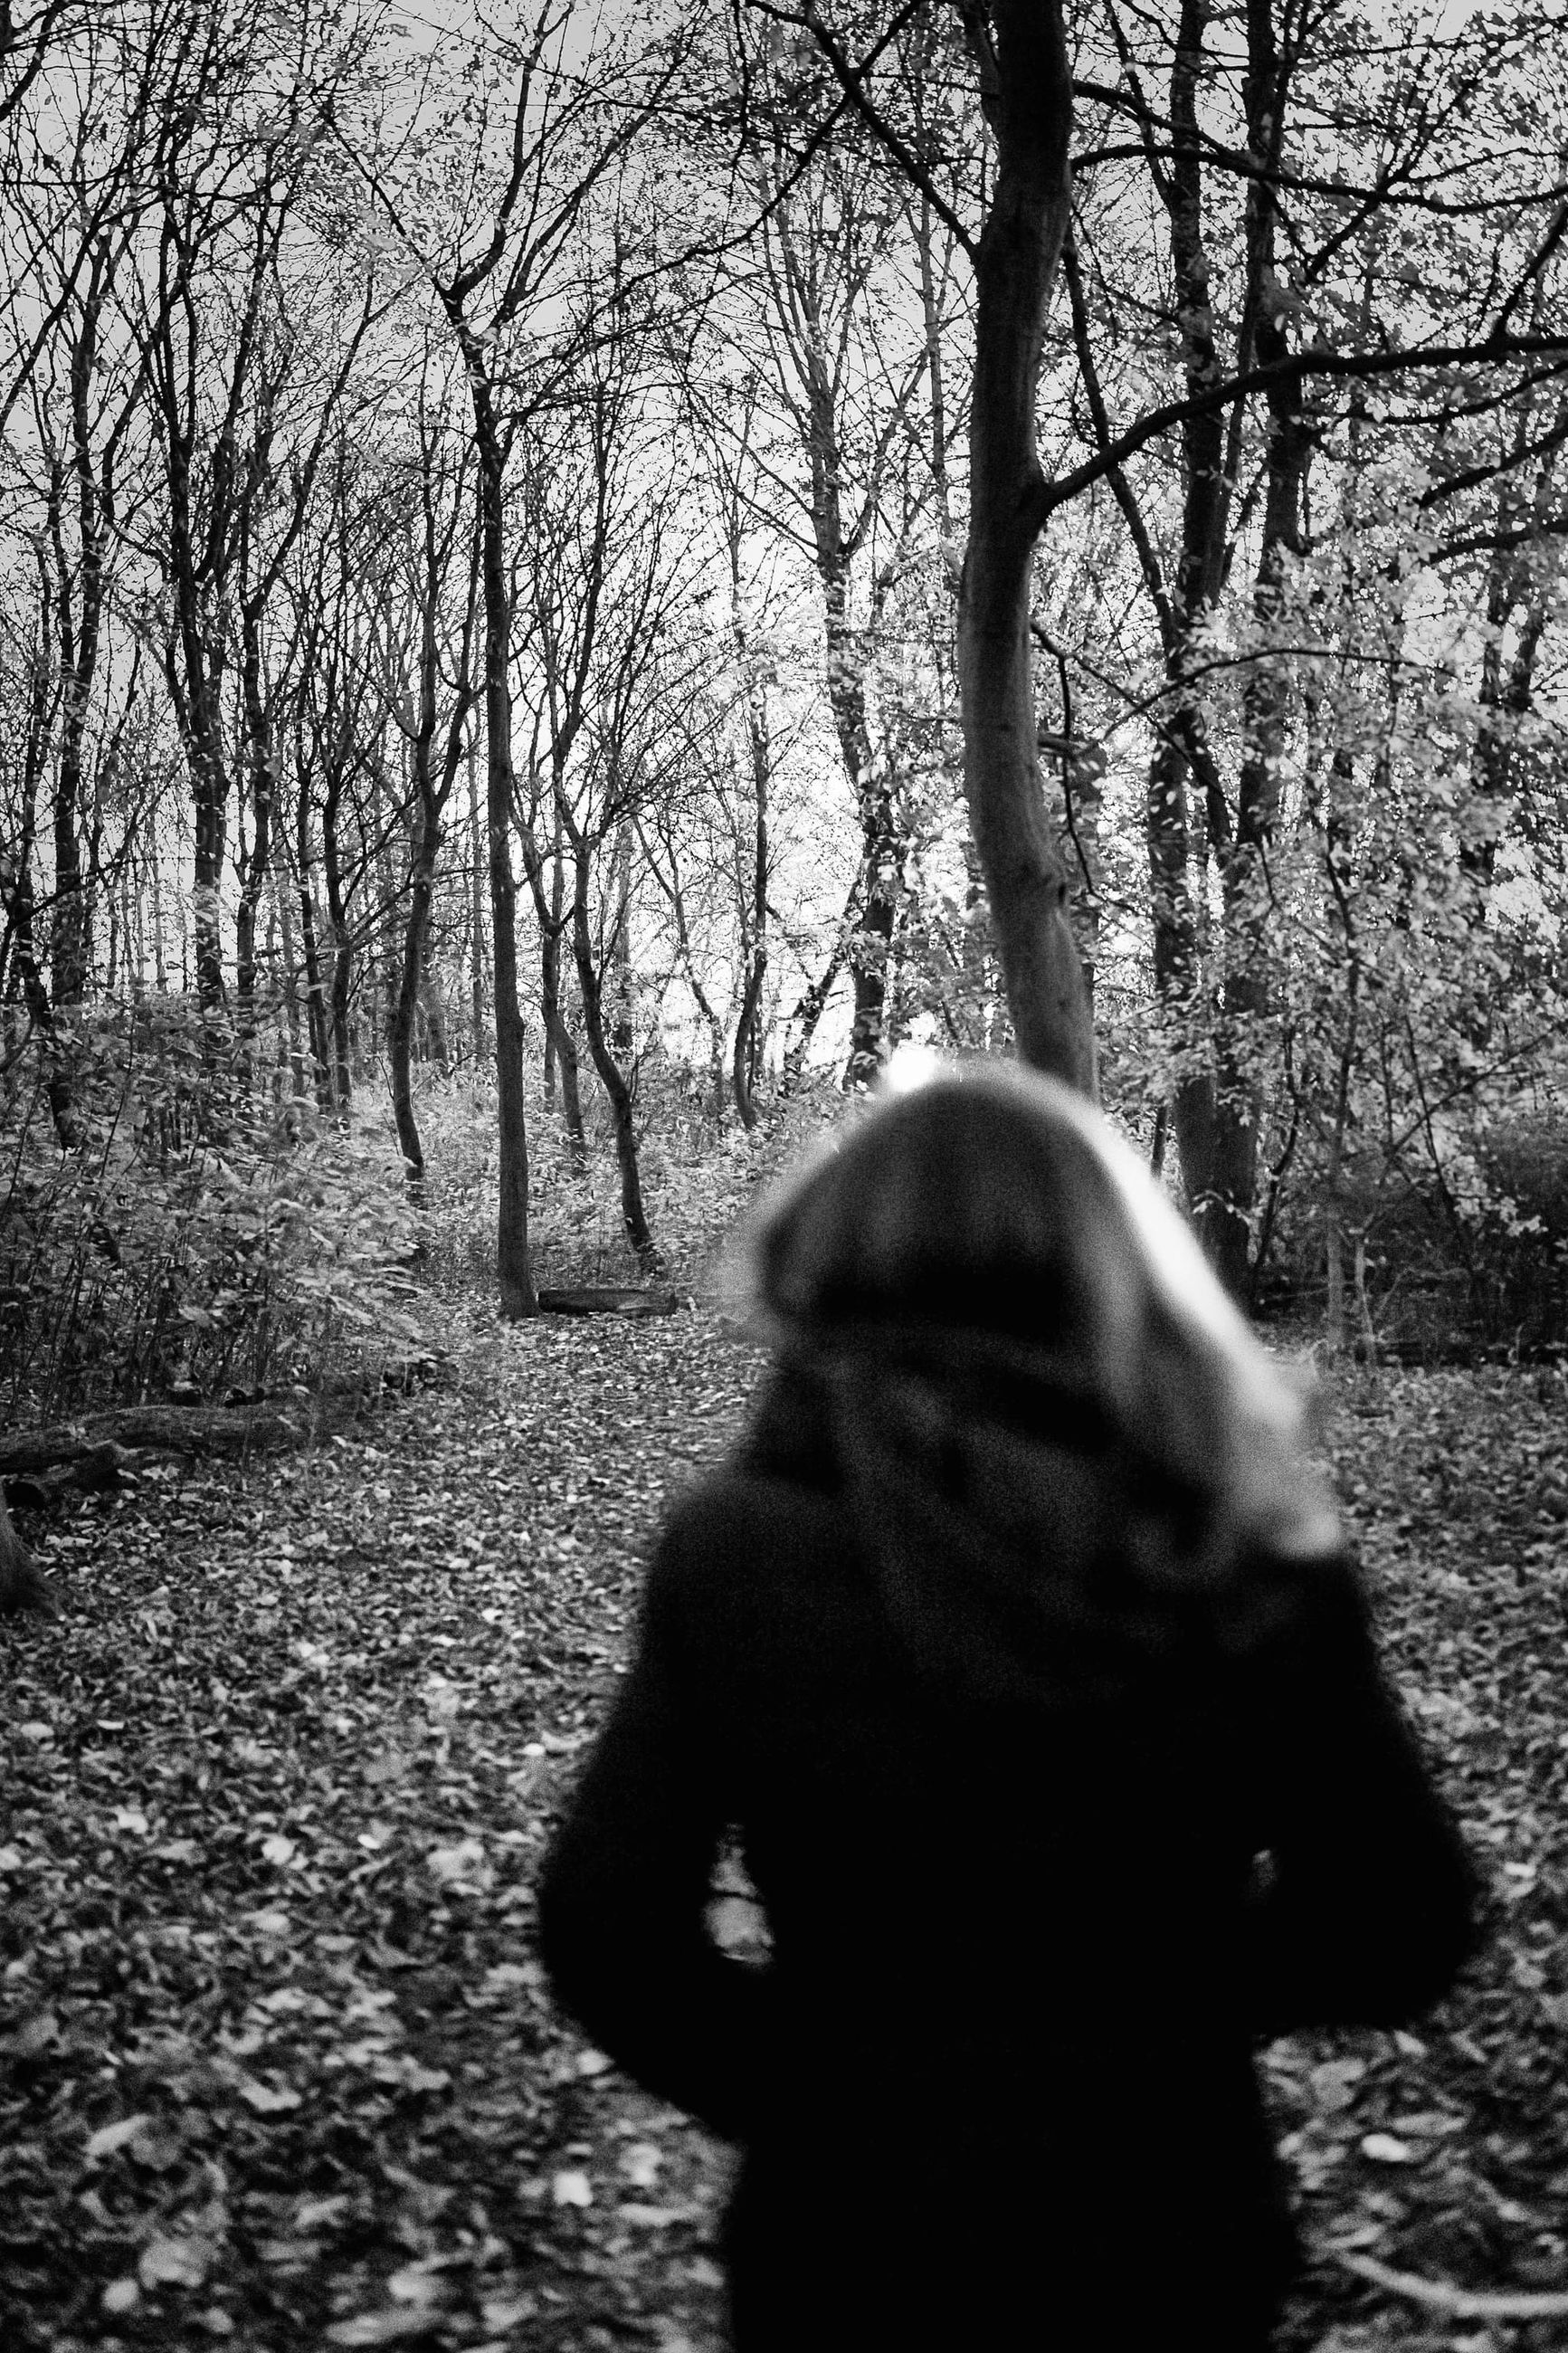 tree, one person, plant, nature, black and white, black, rear view, land, lifestyles, leisure activity, monochrome, day, darkness, monochrome photography, bare tree, women, sunlight, leaf, winter, adult, standing, forest, outdoors, branch, tranquility, tree trunk, morning, trunk, three quarter length, waist up, autumn, casual clothing